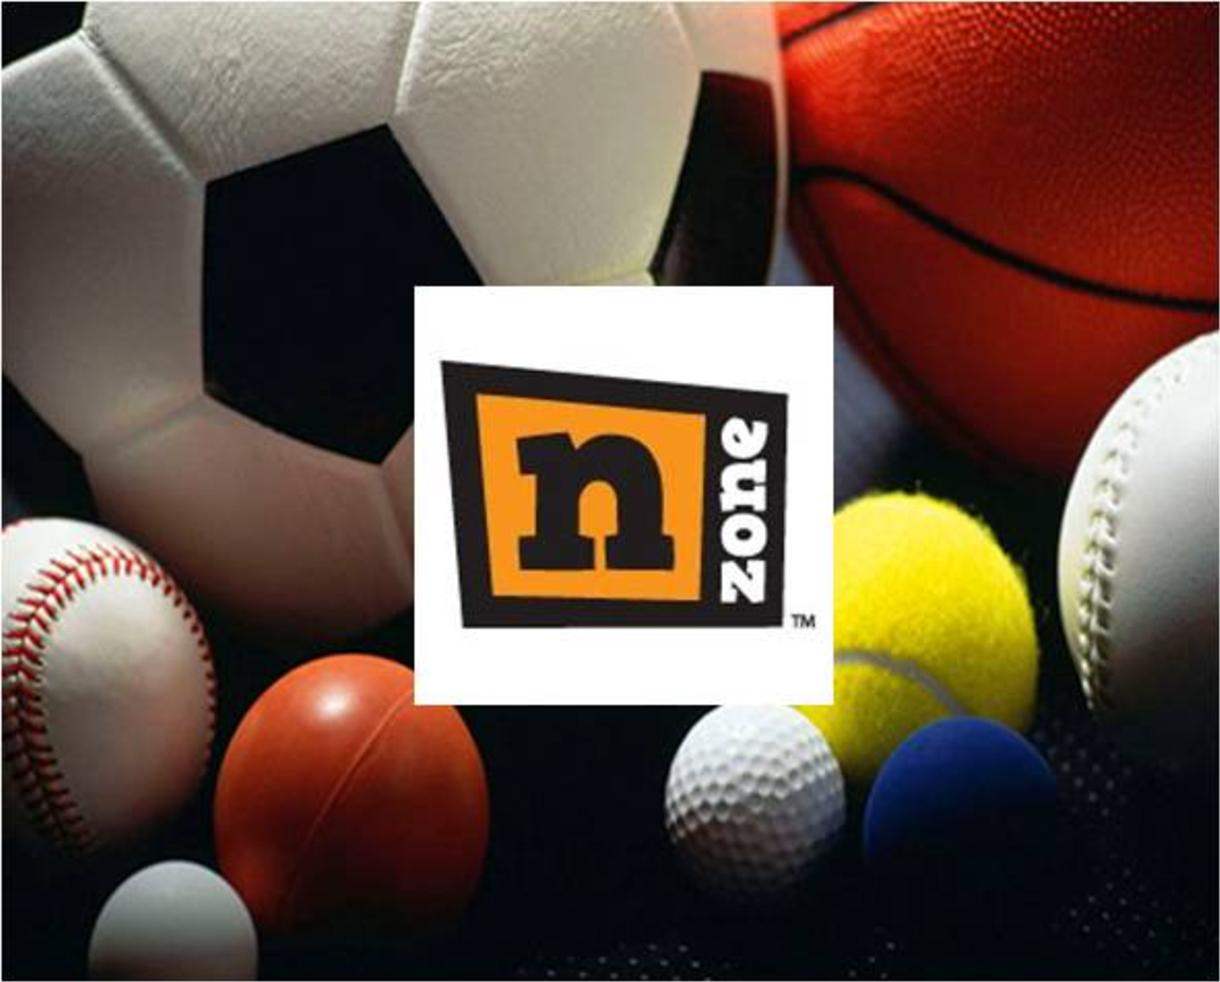 $33 for nZone School's Out All Sports 1-Day Camp for Ages 5-14 in Chantilly ($50 Value - 34% Off)